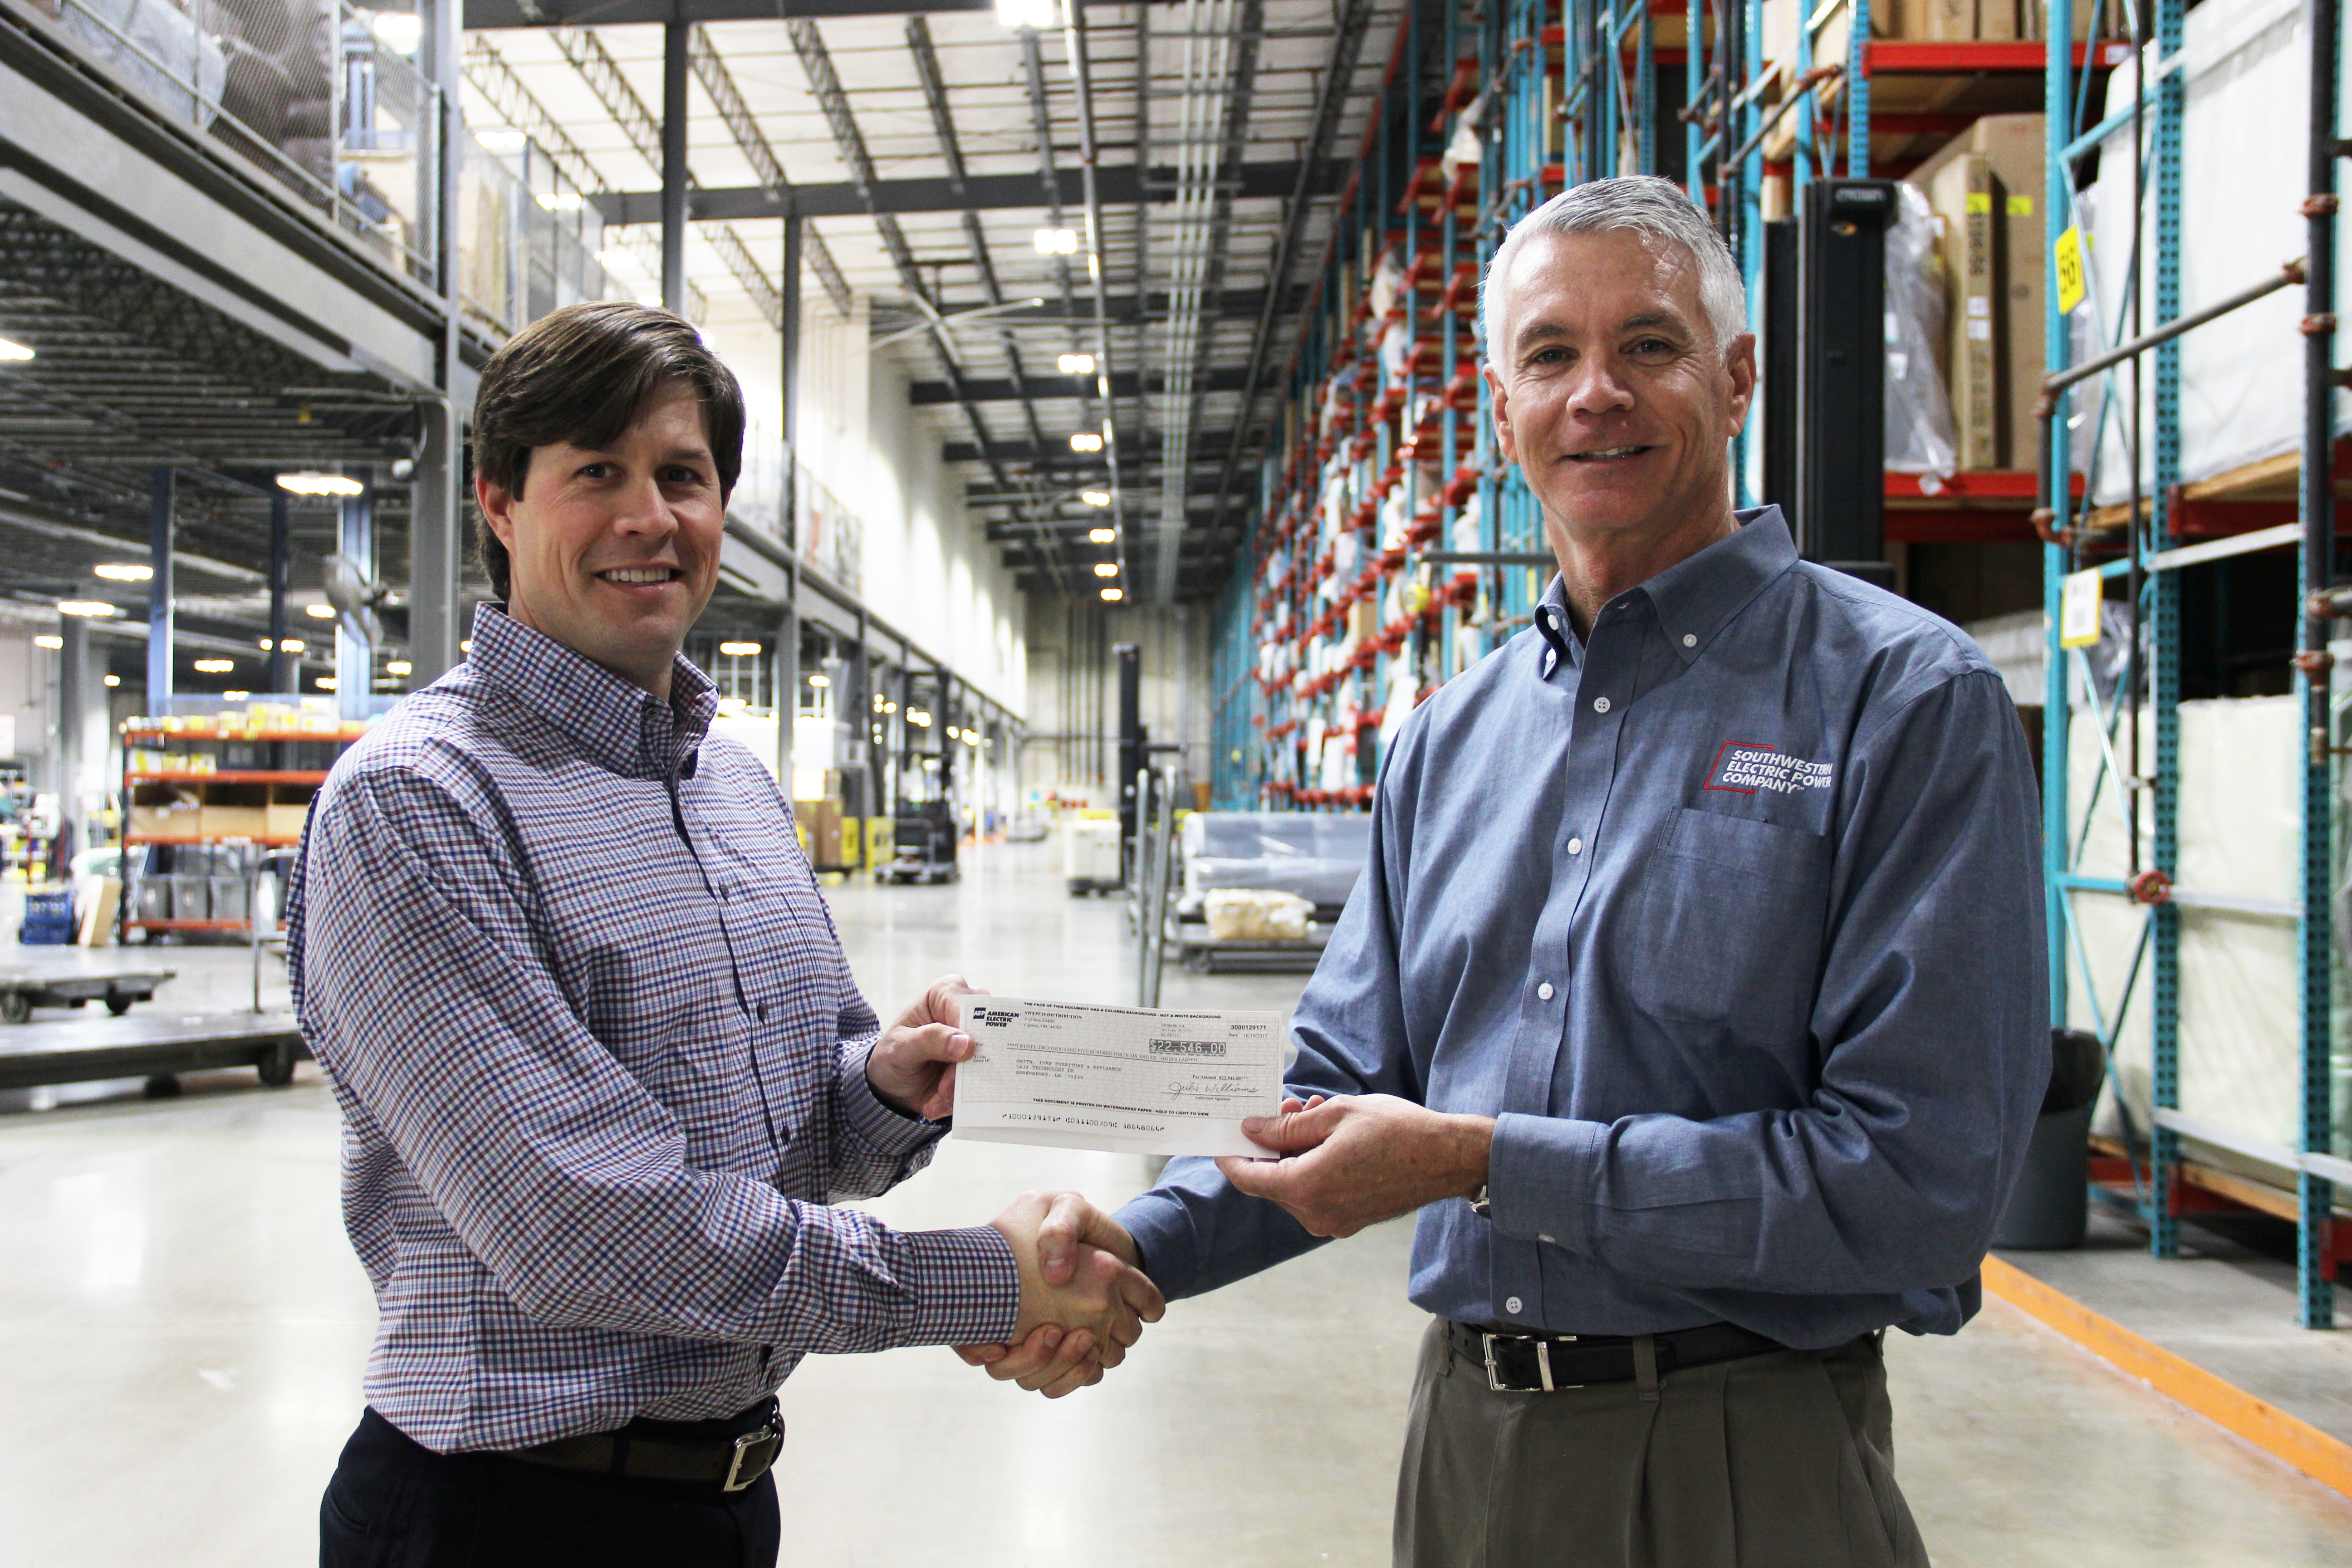 Ivan Smith Furniture Completes Lighting Retrofit, Receives Incentive Check